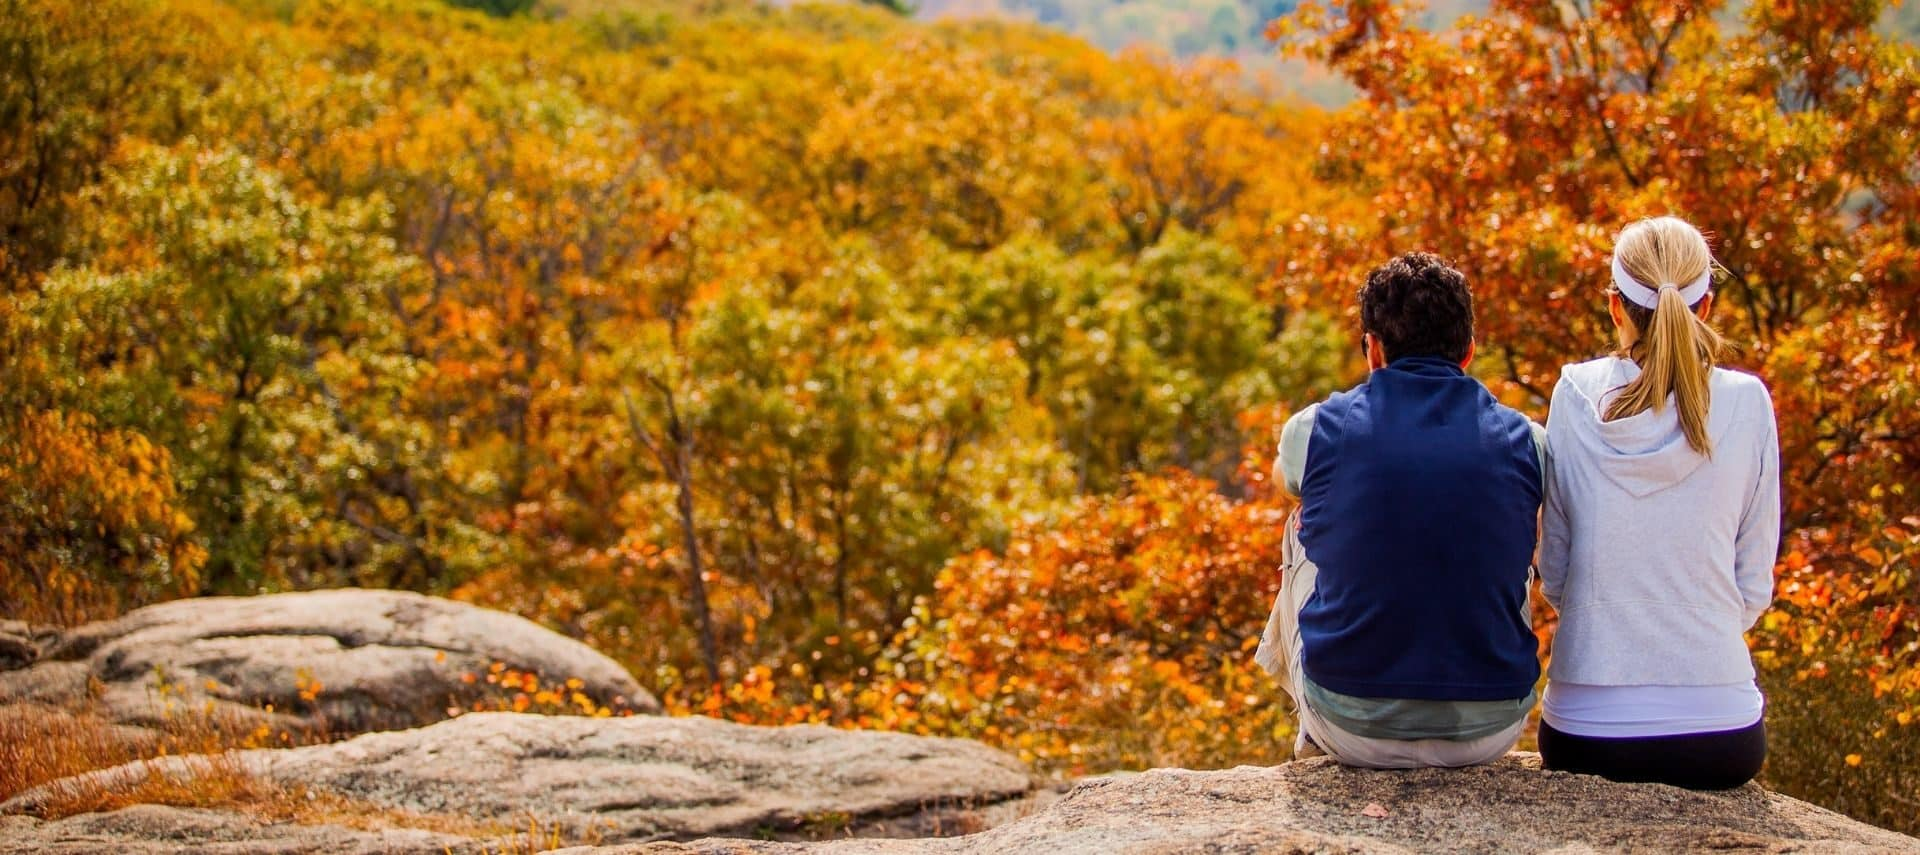 Couple sitting side side on a rocky ledge surrounded by colorful trees during the fall